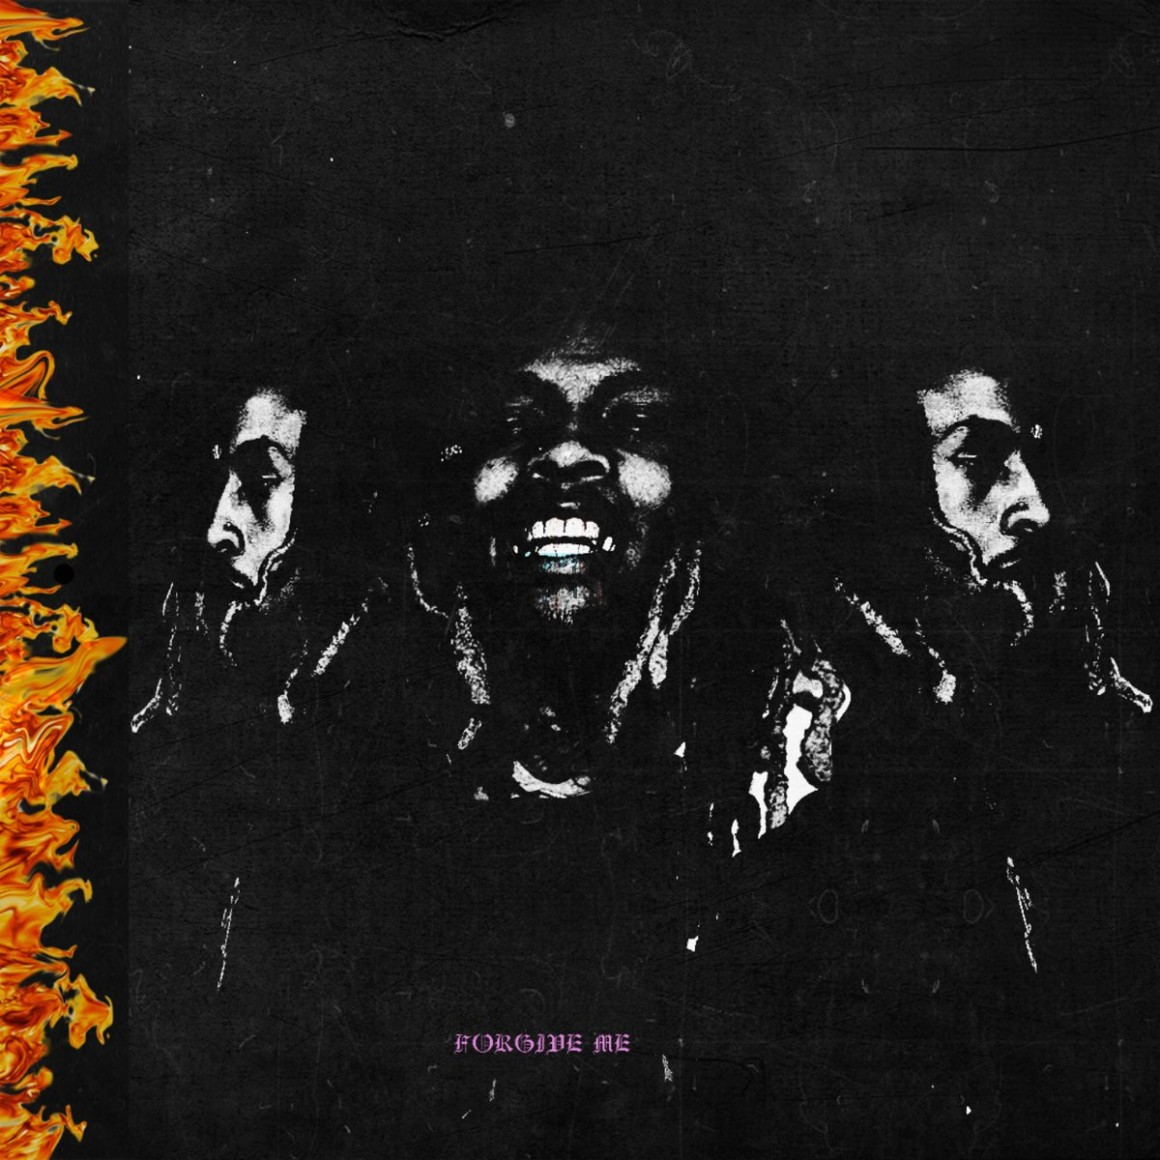 Chris Travis Drops His New Mixtape 'Forgive Me' 3.1.2017